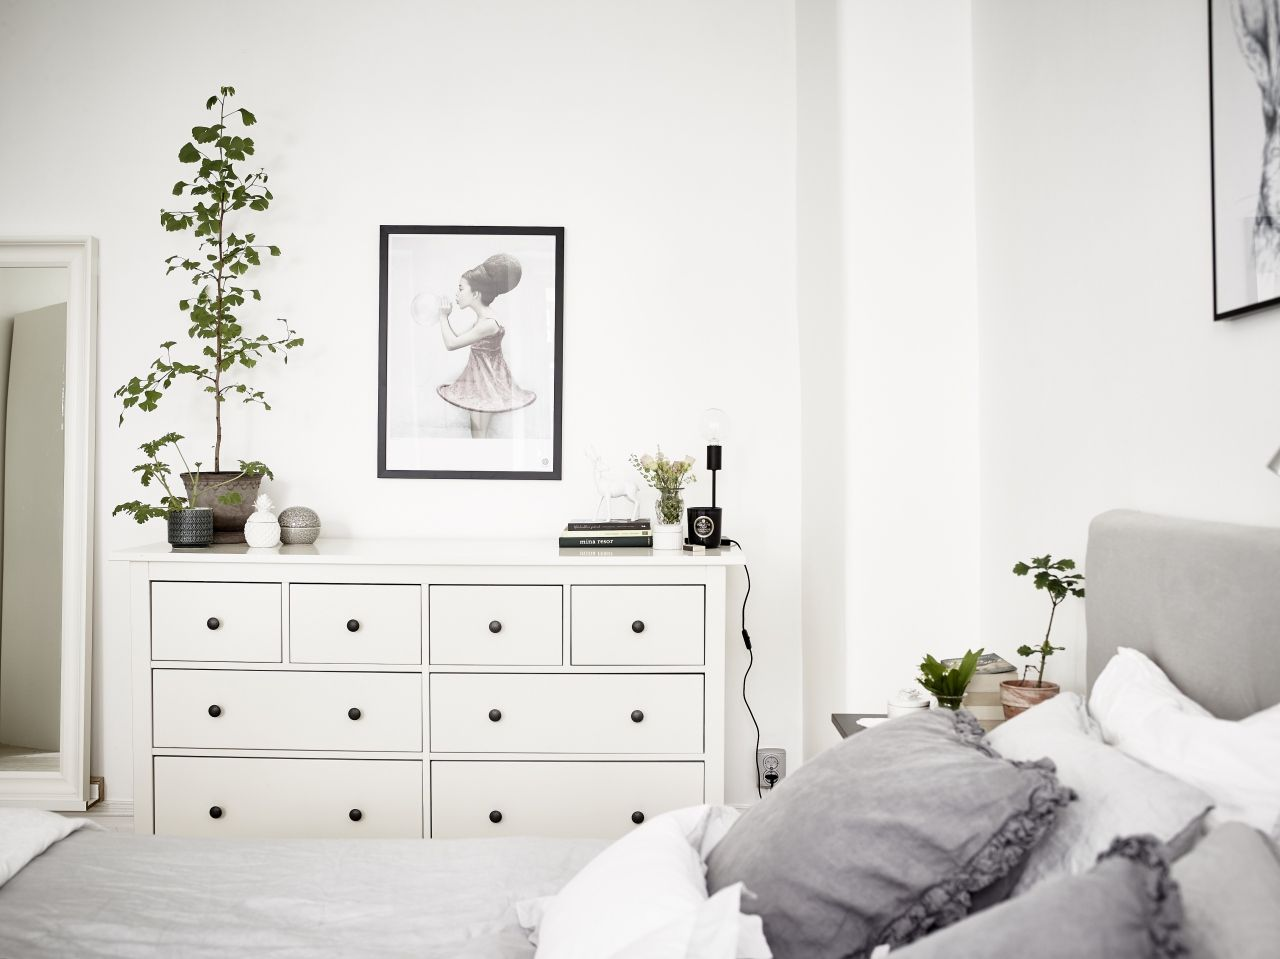 ikea white bedroom furniture. 12 Best Interior Design Finds At IKEA | Laurel \u0026 Wolf. Ikea Hemnes DrawersWhite Bedroom DresserWhite Furniture White R